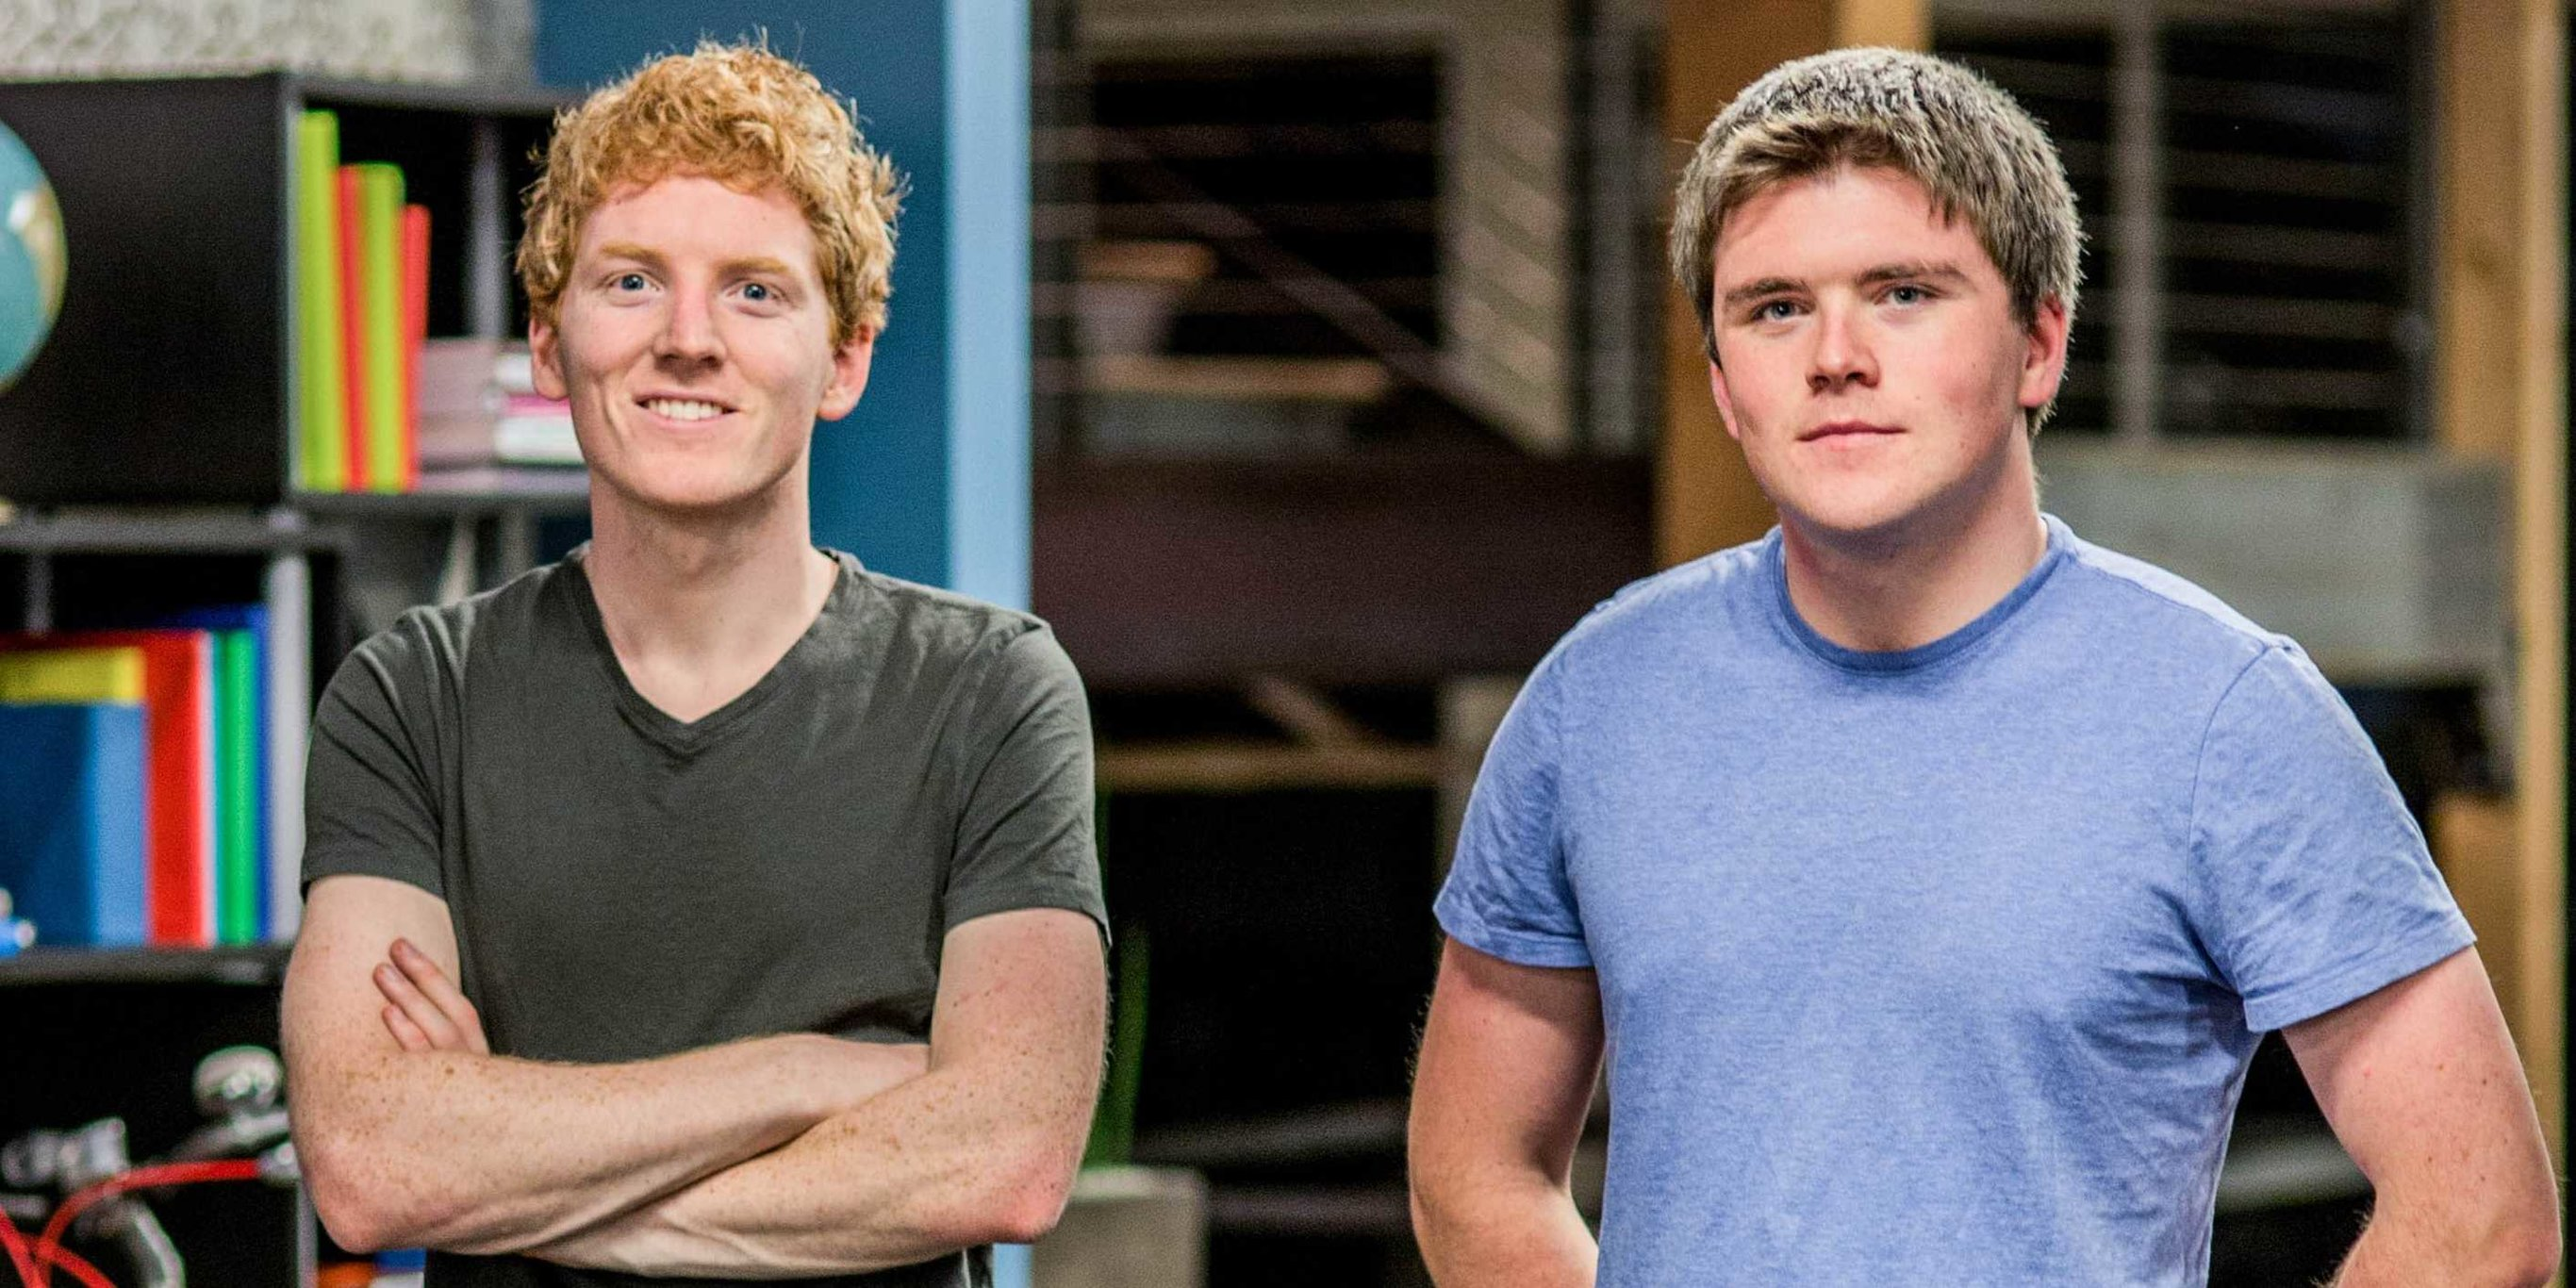 Stripe just scored a $35 billion valuation, up $15 billion in just 1 year. But its president says it's still a 'toddler,' so don't call it a 'late-stage startup'